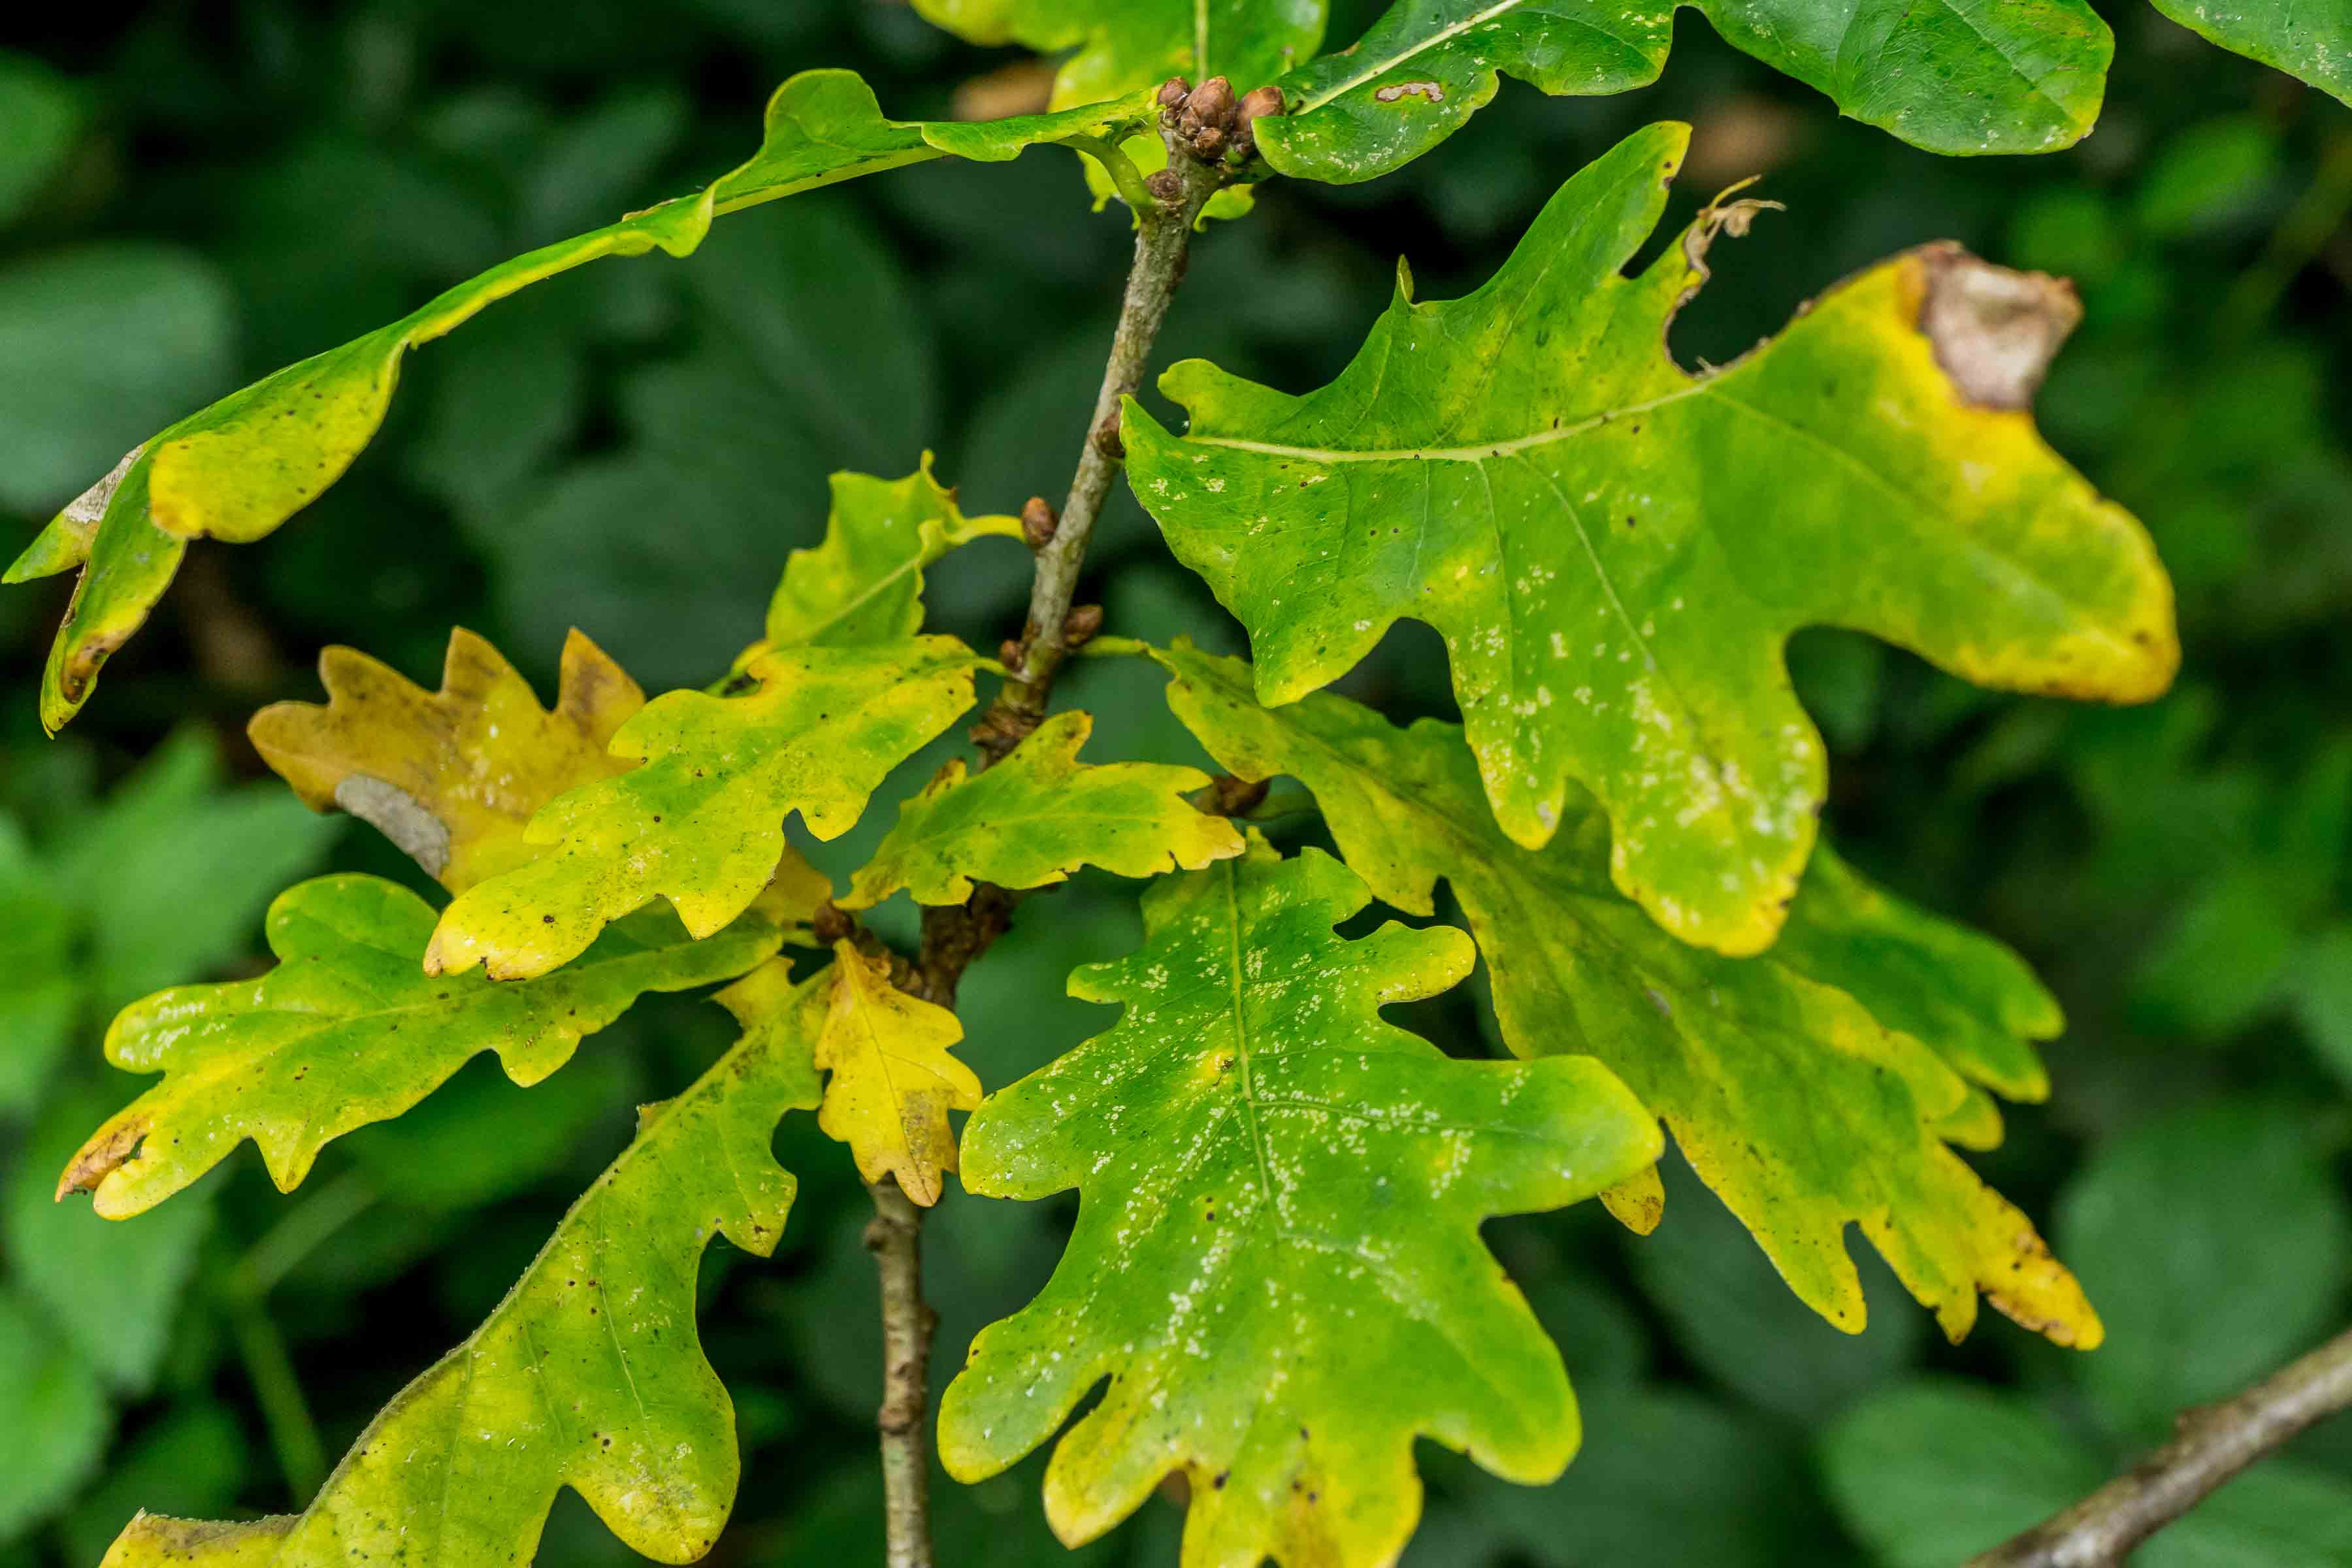 Green leaves from oak tree turning yellow on their edges